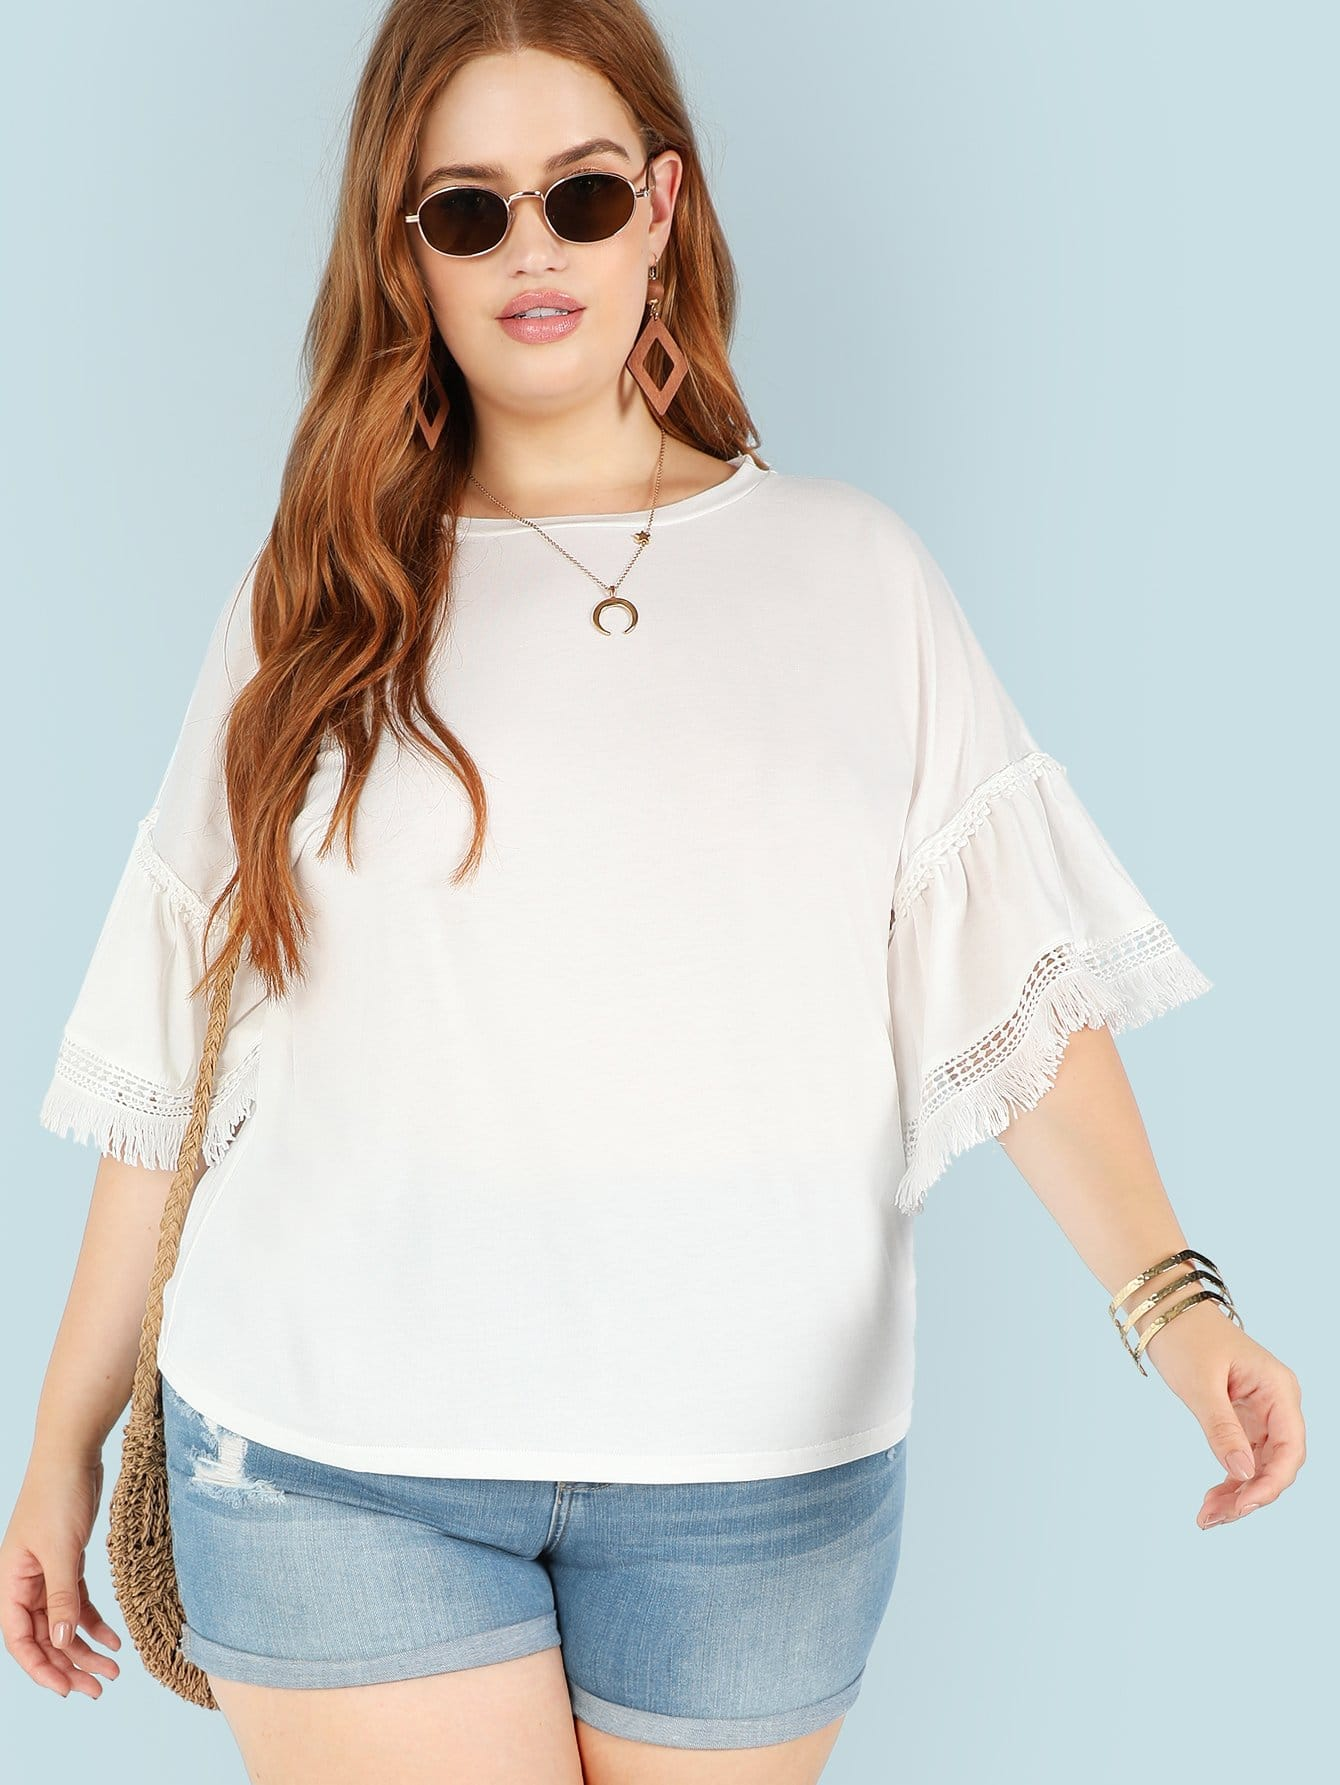 Plus Cut Out Detail Fringe Flounce Sleeve Tee велосипед centurion eve 60 27 2016